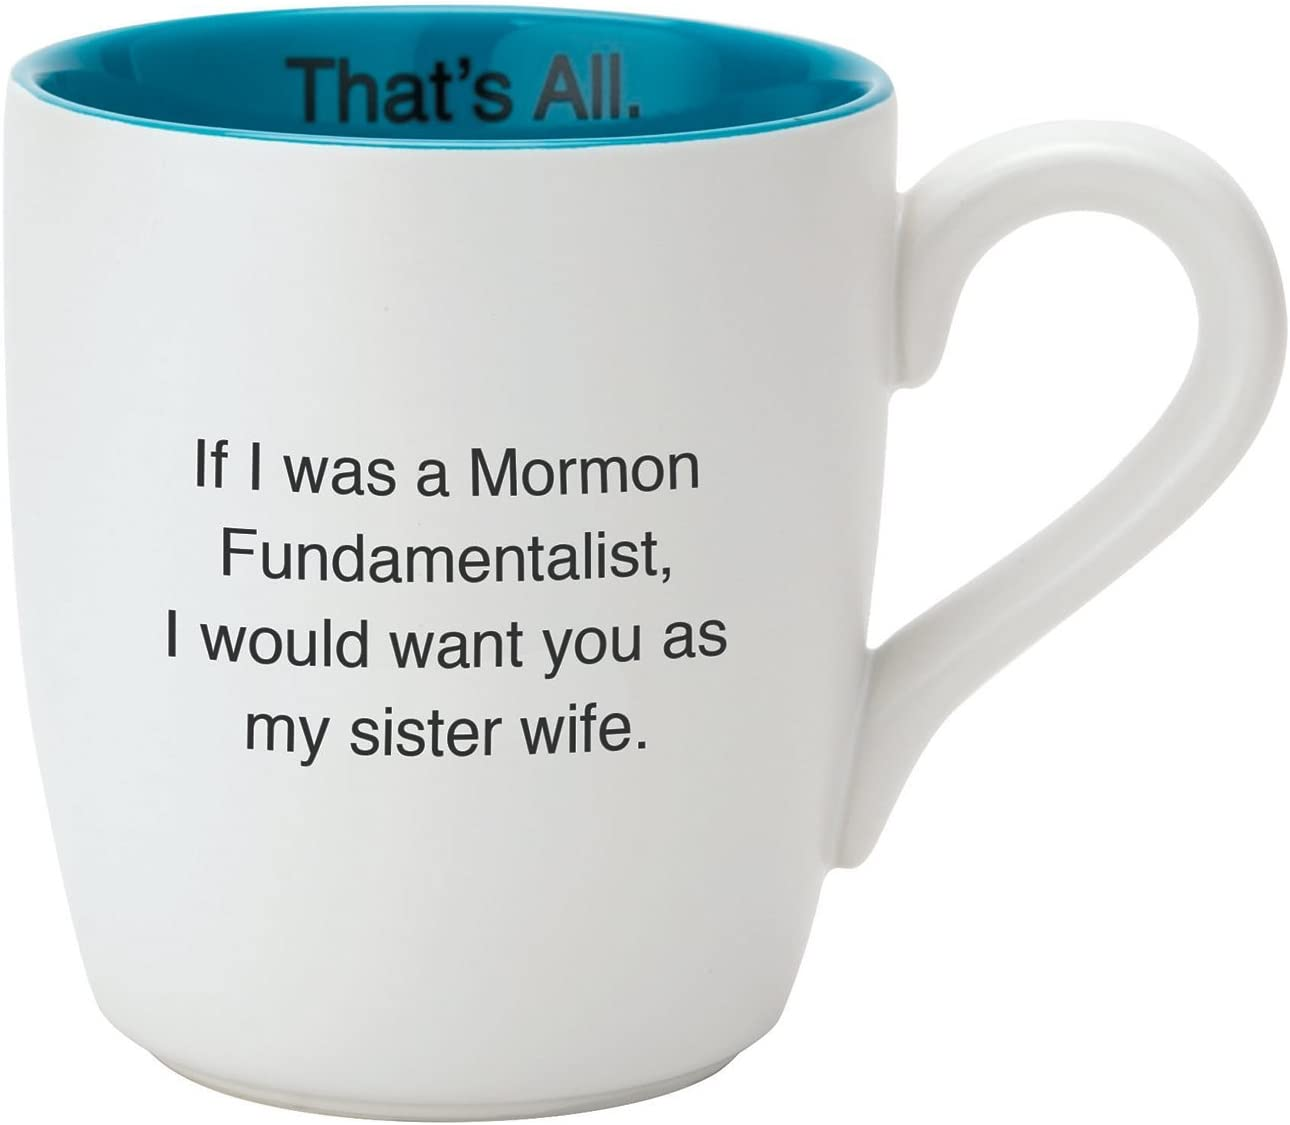 Creative Brands That S All Mug 16 Oz Sister Wife Home Kitchen